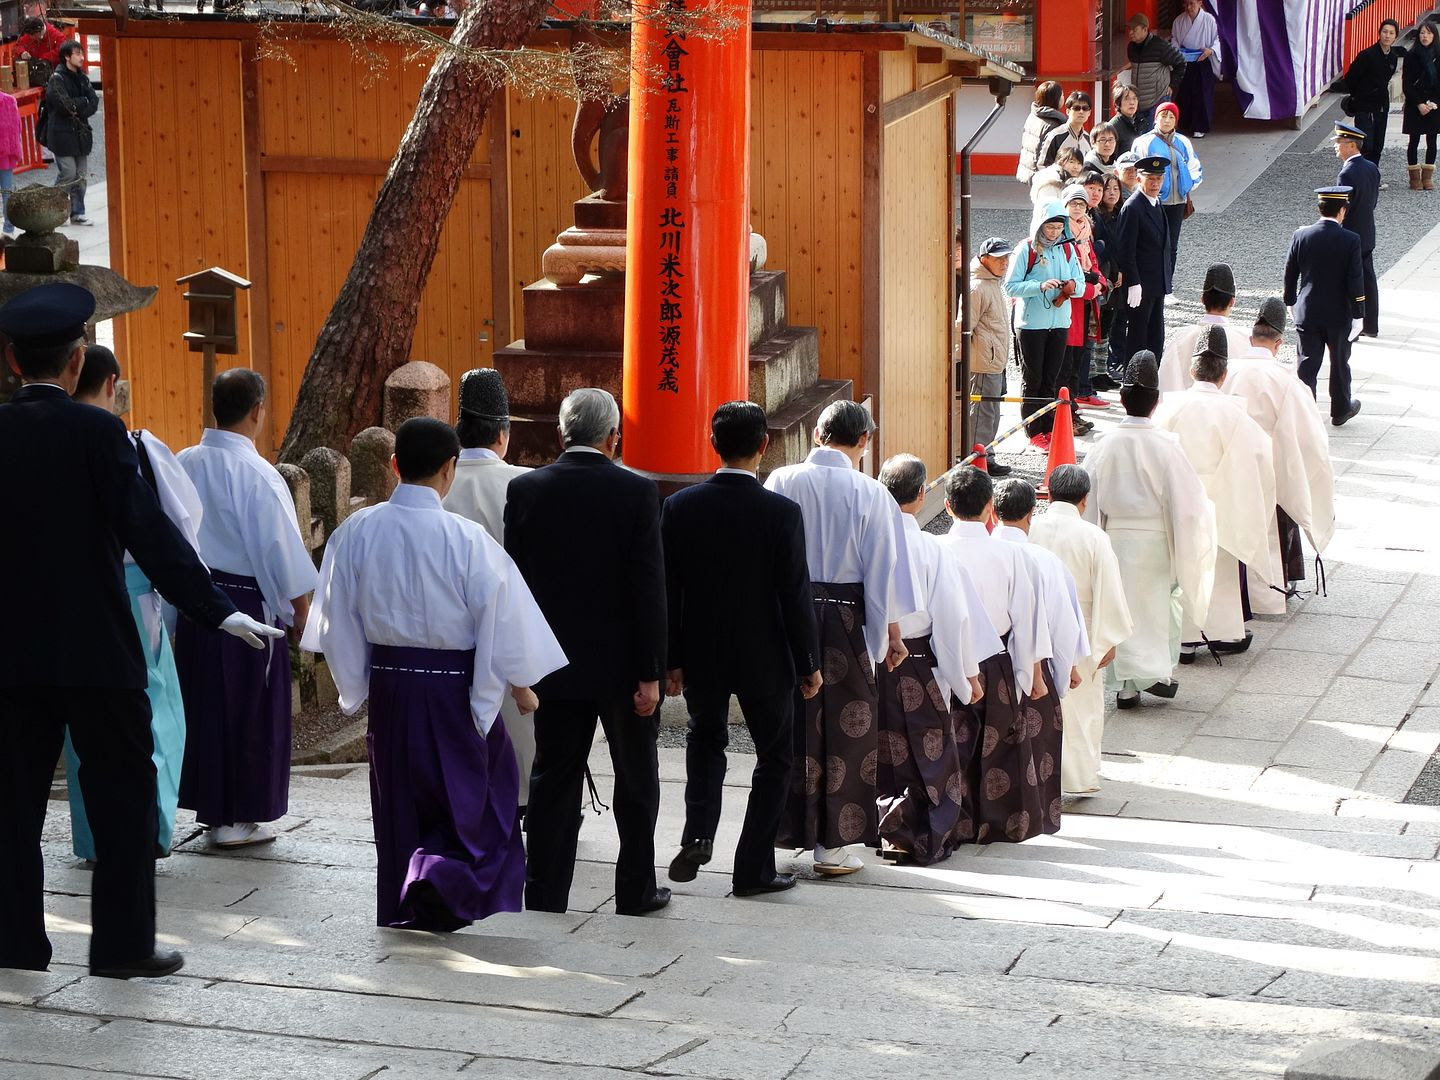 Priests at Fushima Inari Shrine photo 2013-12-23DSC00517_zps64161d60.jpg